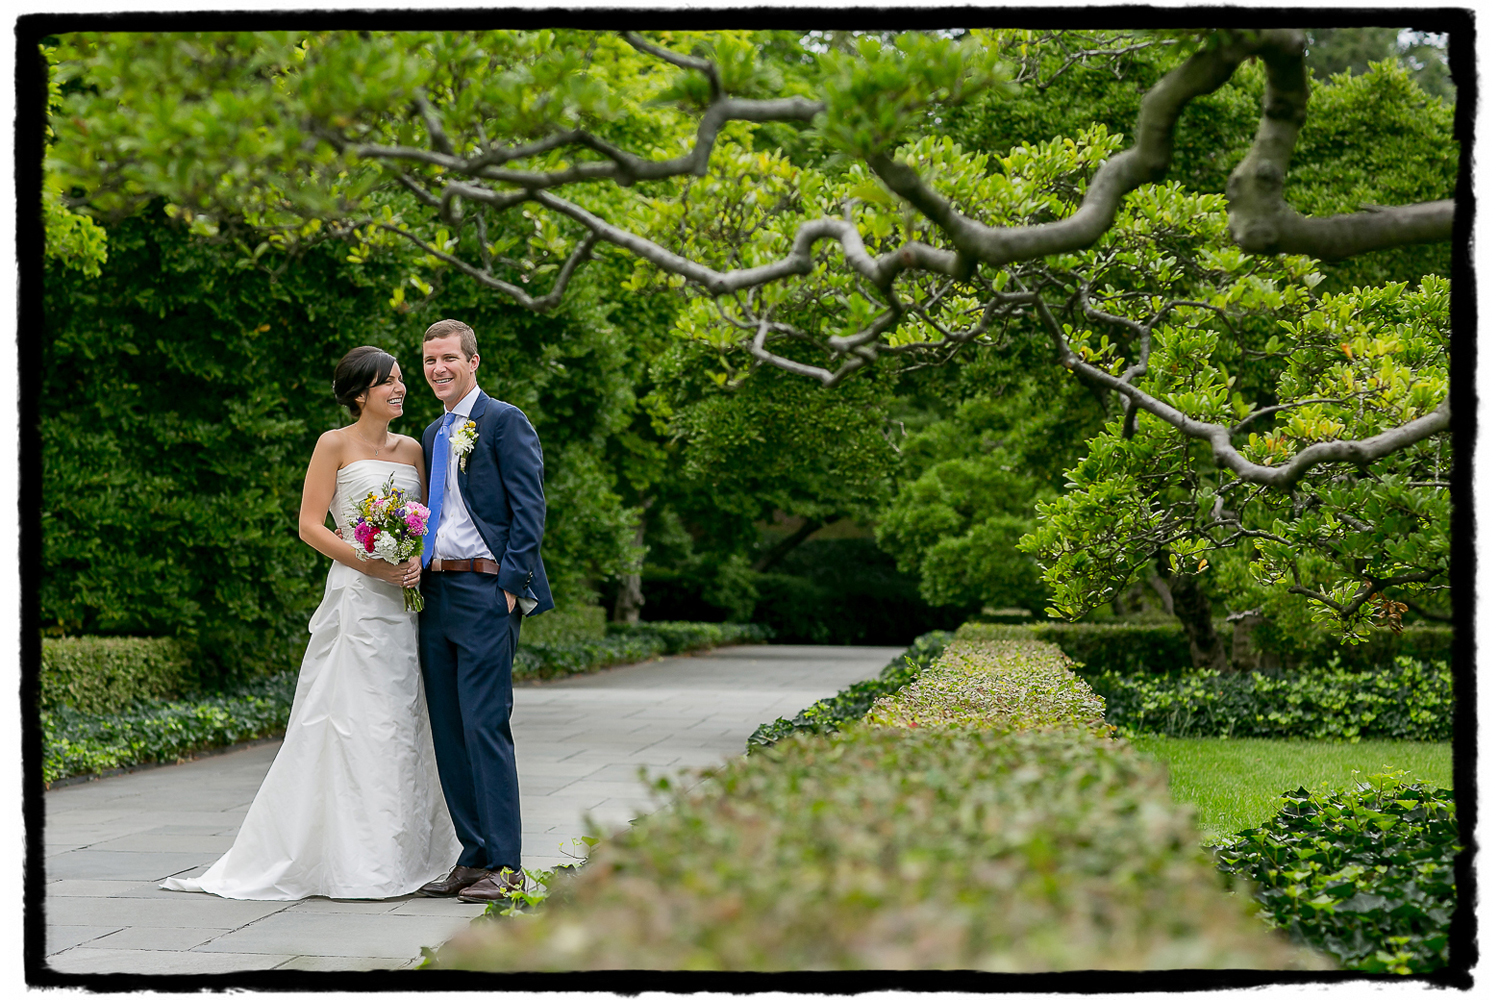 Angela and Dave are framed with greenery of the Brooklyn Botanic Garden before they celebrated their reception at The Palm House.